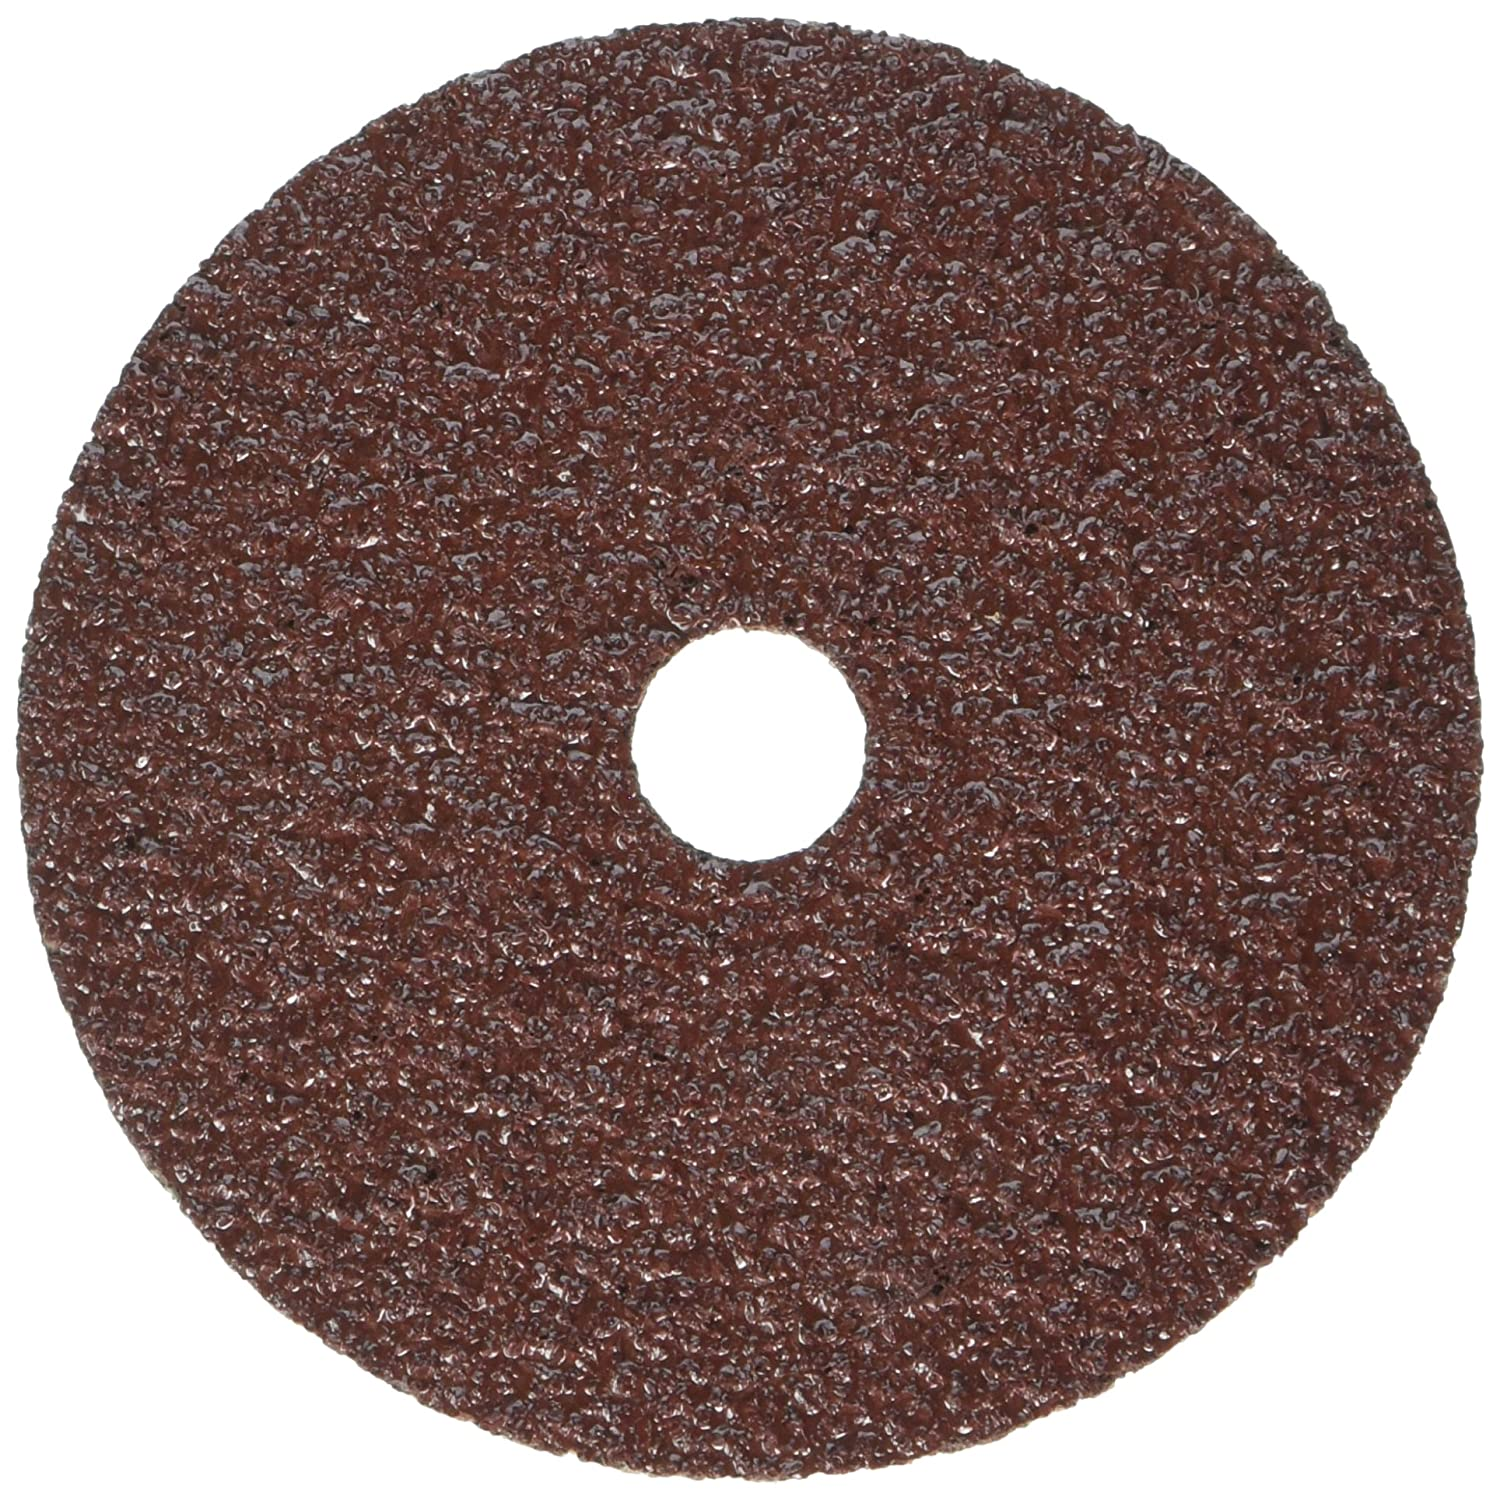 2A 4 X 5//8 24X Blue Line Disc 20 Pack United Abrasives-SAIT 50000 SAIT Fiber Disc